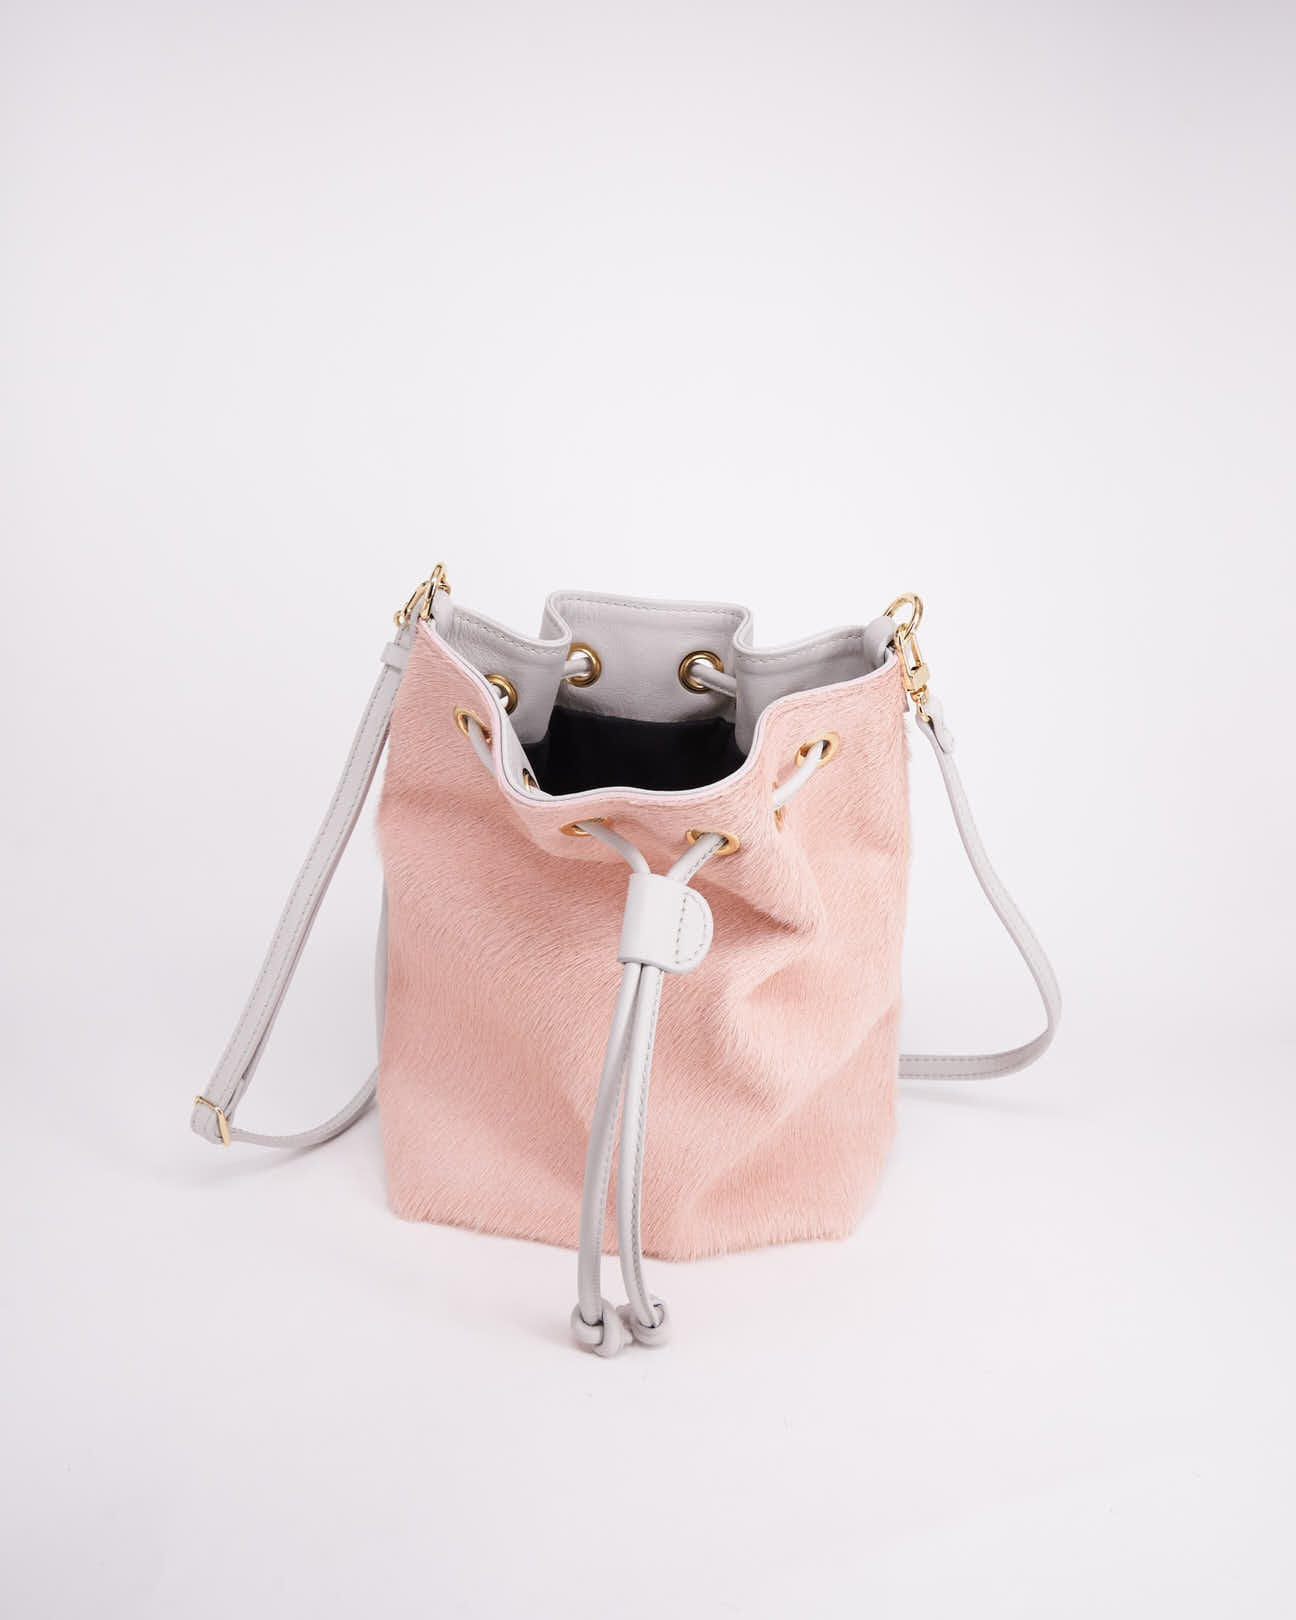 Bag-Nuo Sac-Nuovum-Leather-Pink-localdesigners-Barcelona-Nuovum-Handmade-inside